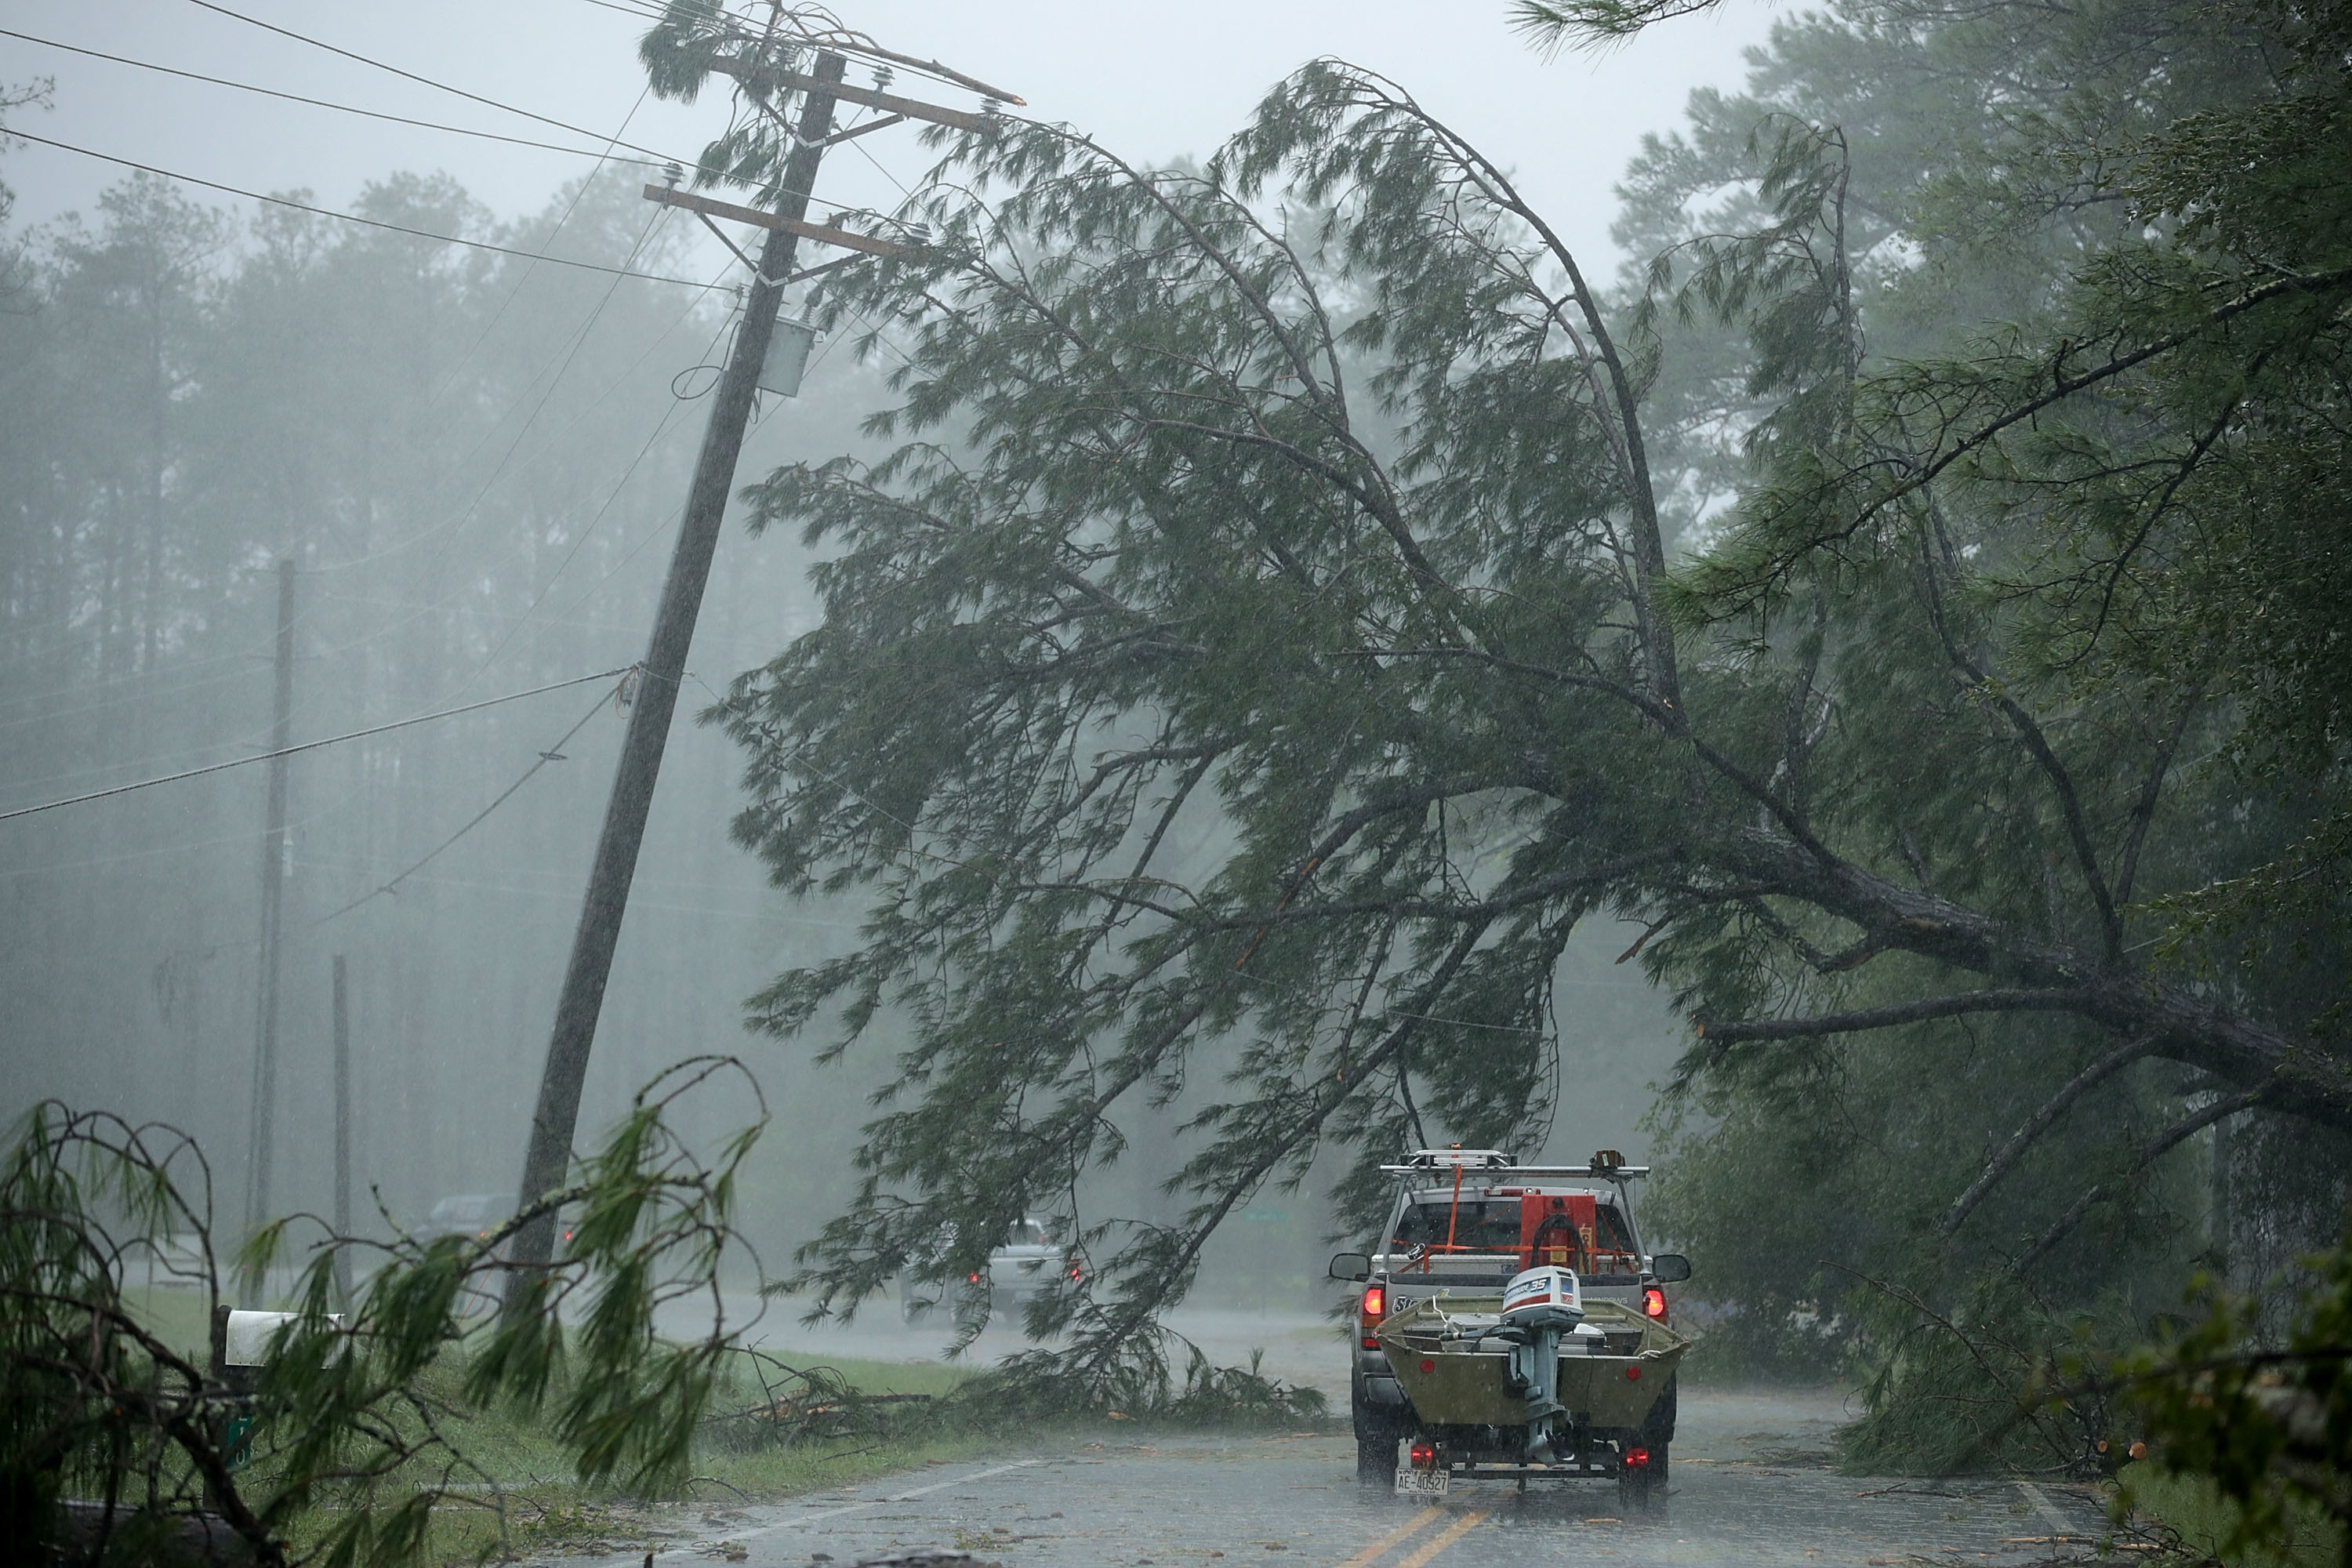 A volunteer rescue truck drives underneath a fallen tree in New Bern, North Carolina.